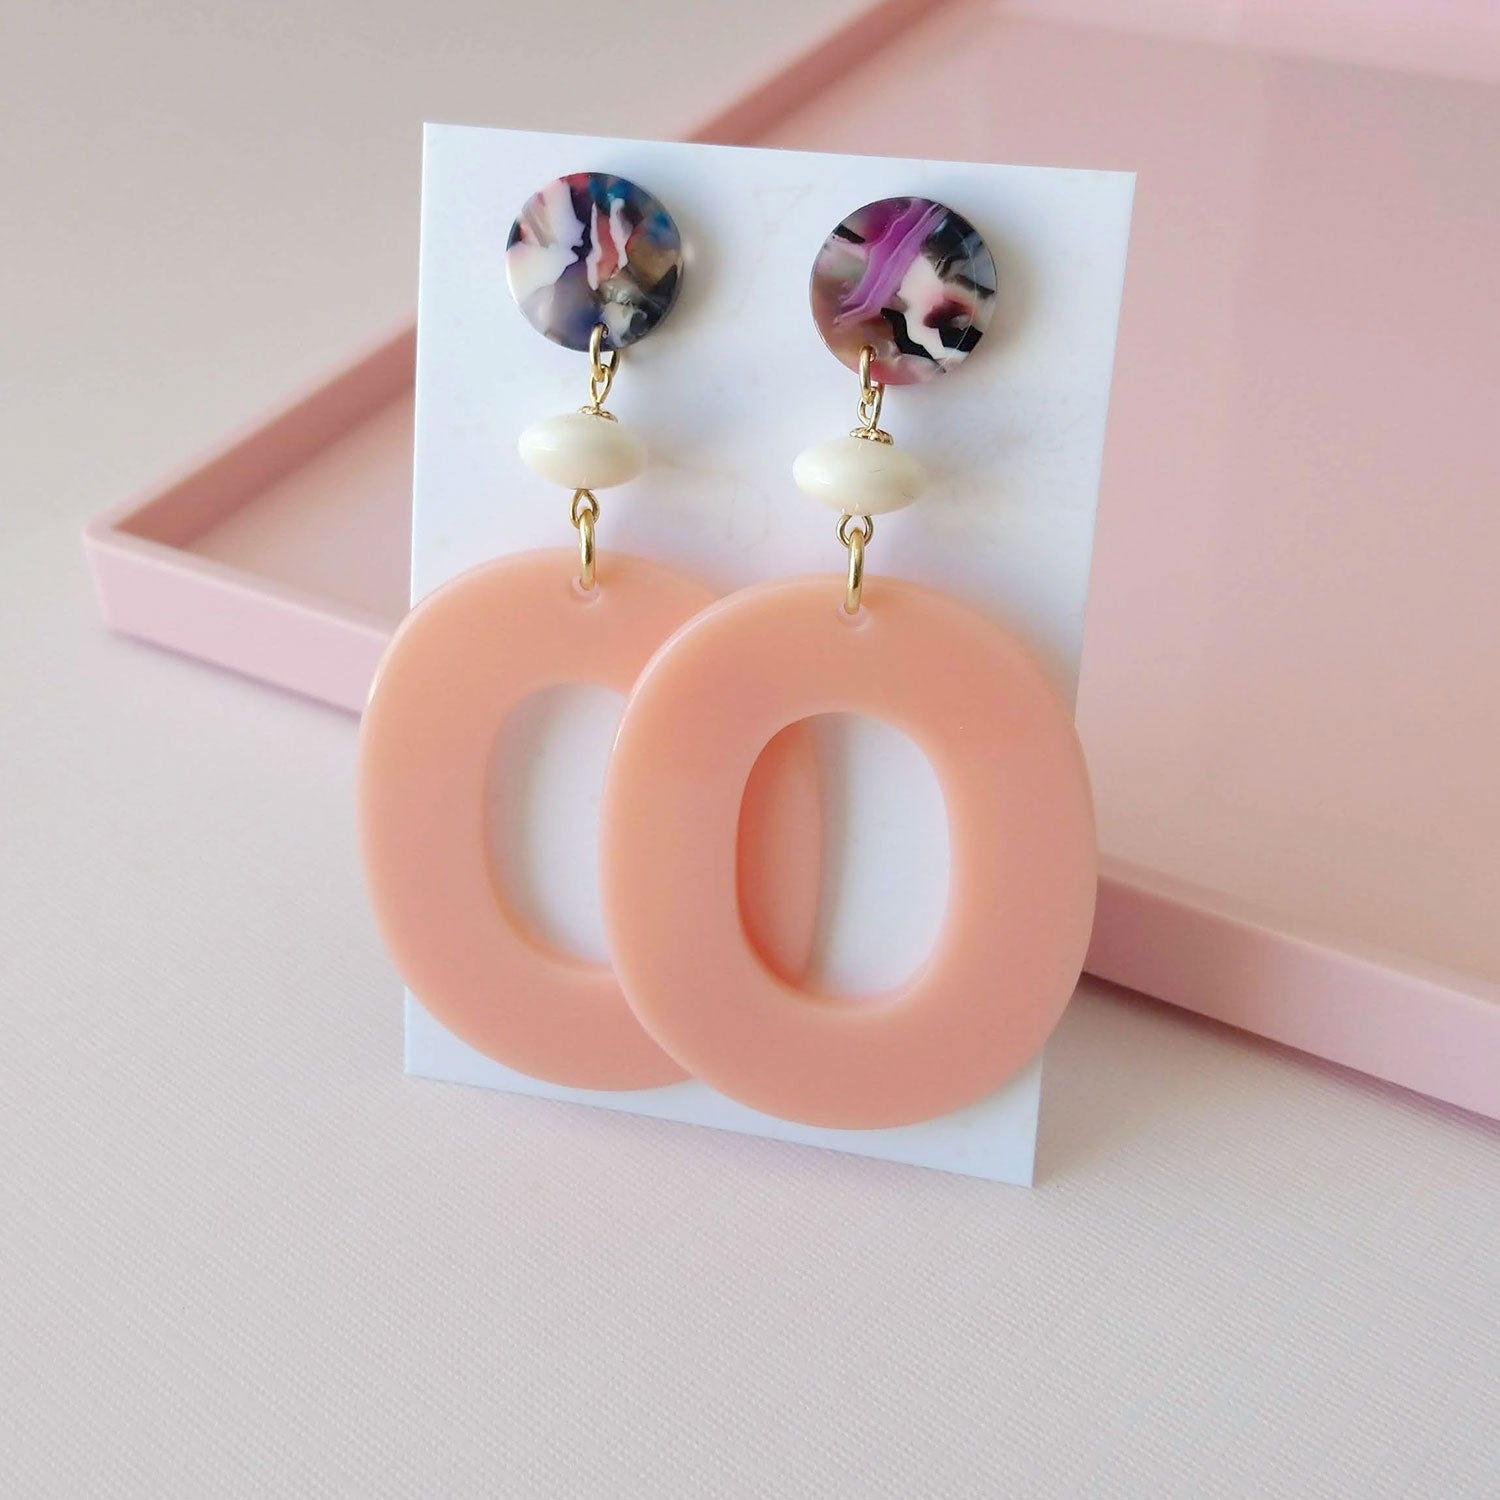 statement earrings acrylic hoops peach acetate